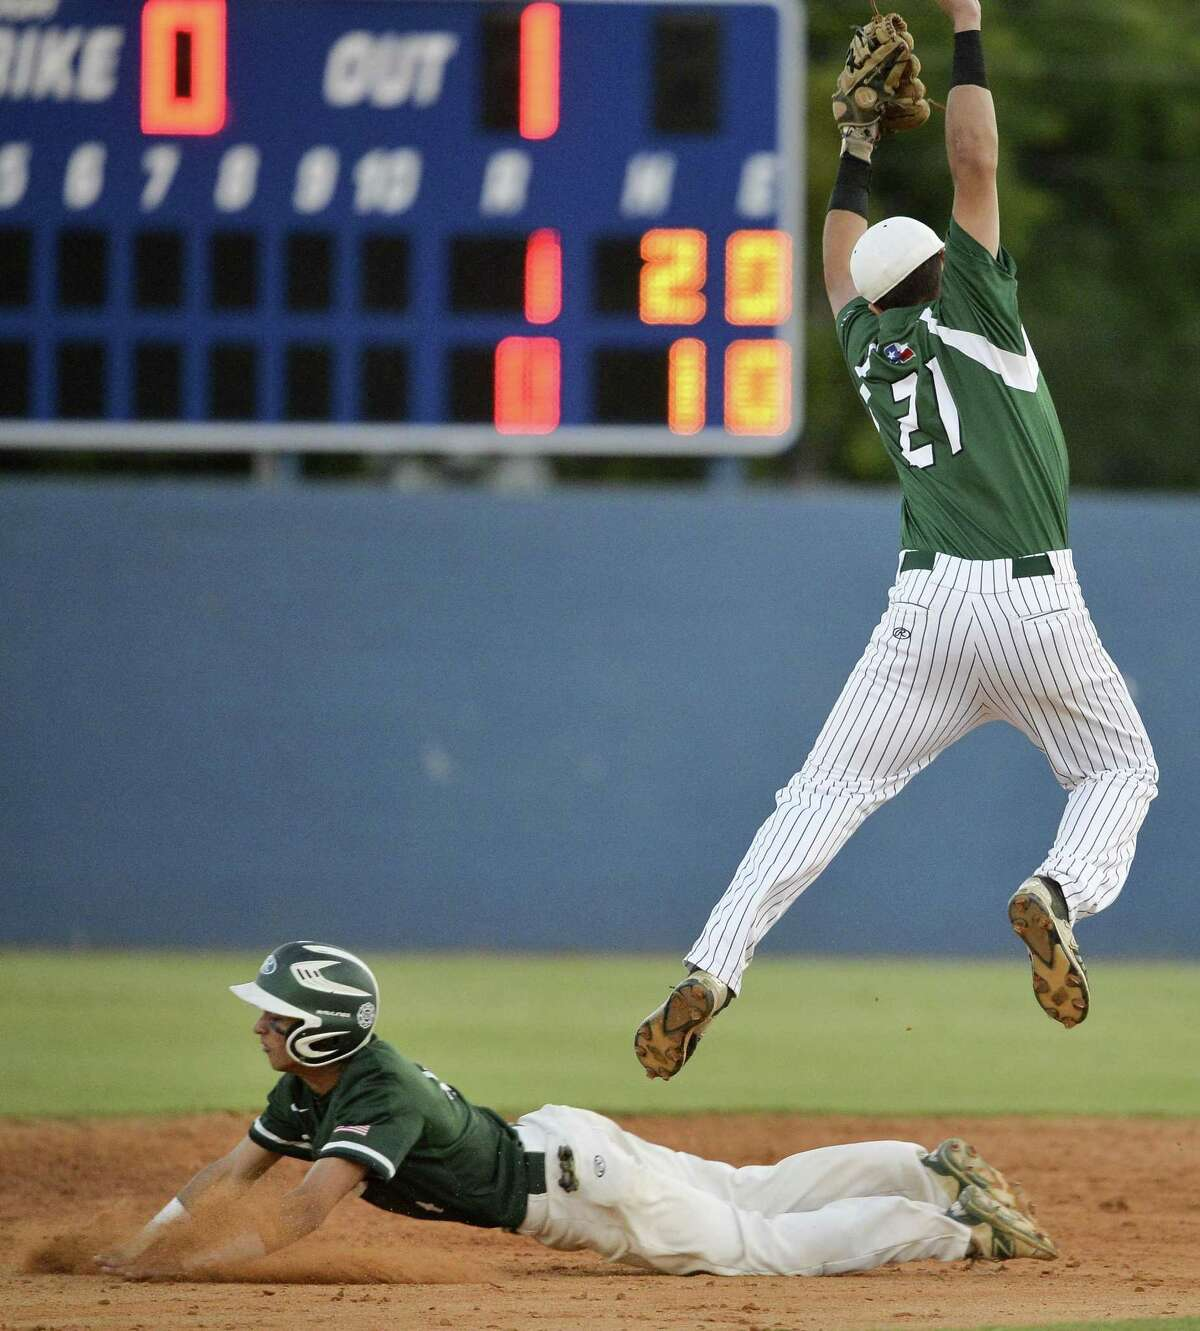 Southwest's Gabe Rivera, left, steals second base as Reagan's Ramon Garza jumps to avoid a collision during game one of their Region IV-6A semi-final playoff baseball series, Thursday, May 25, 2017, at SAISD Sports Complex in San Antonio. Reagan won 9-1. (Darren Abate/For the Express-News)